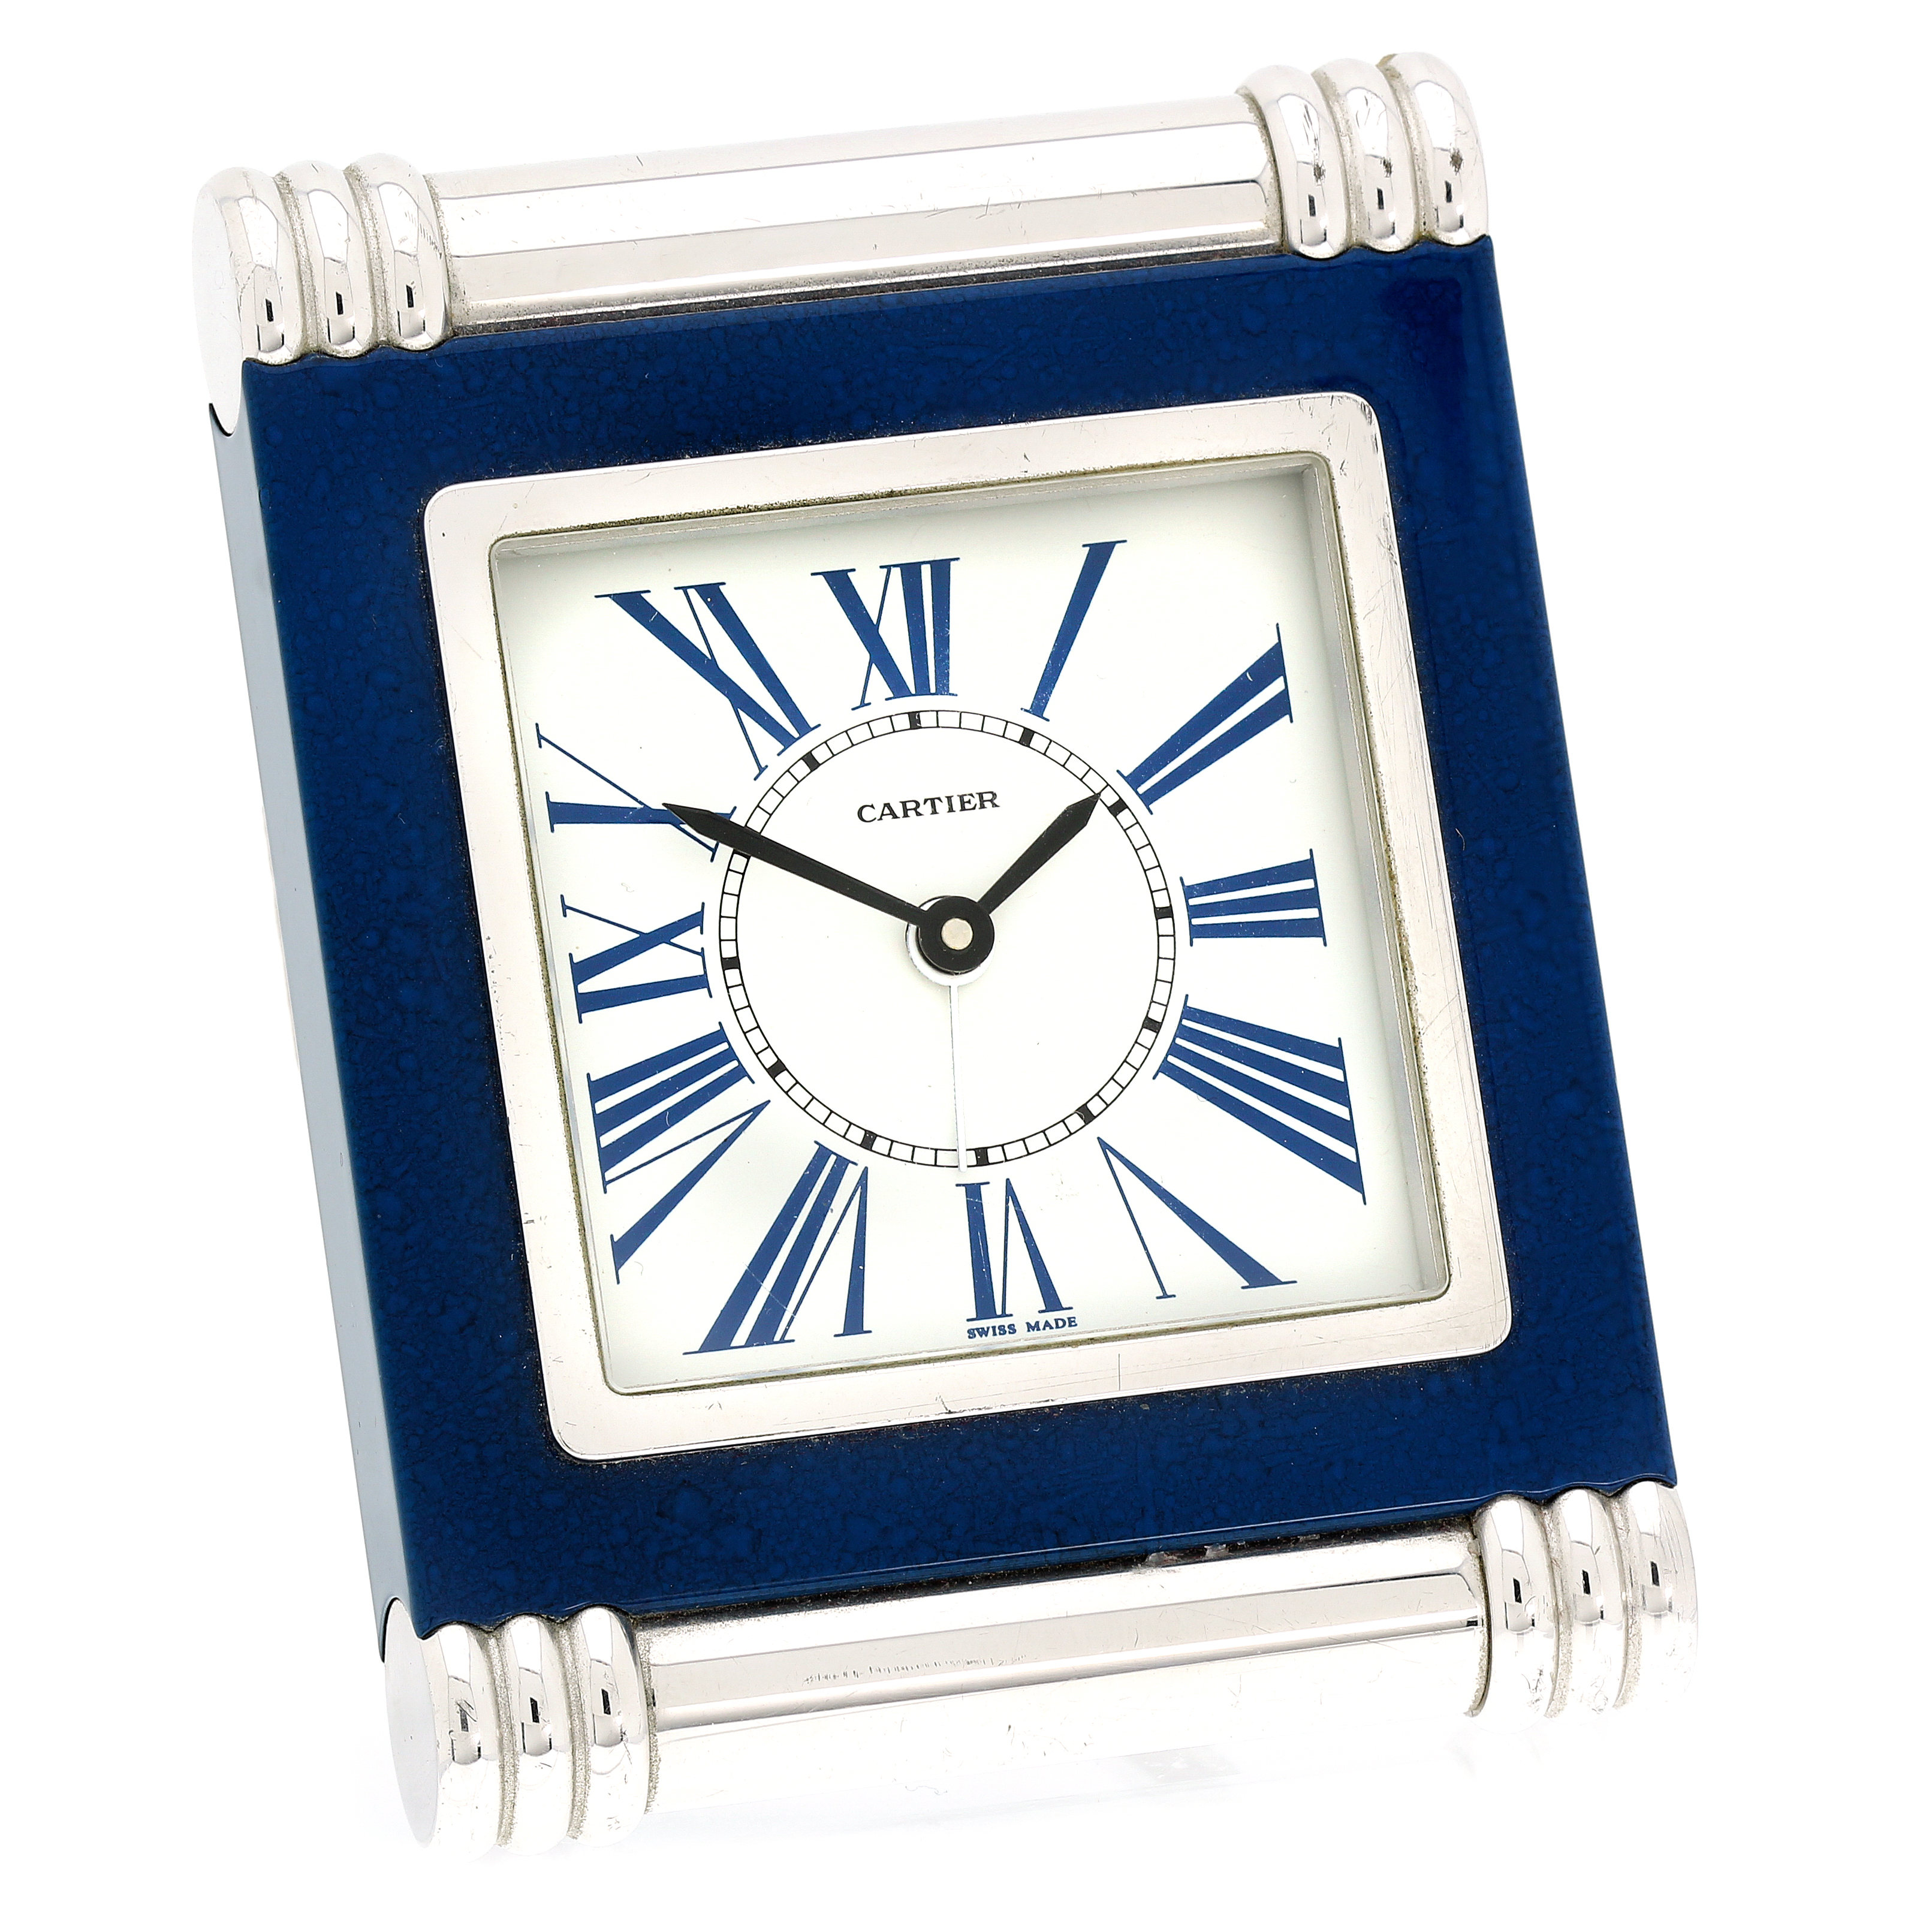 Los 305 - A VINTAGE LAPIS LAZULI DESK CLOCK, CARTIER CIRCA 1980 of upright form on a hinged strut